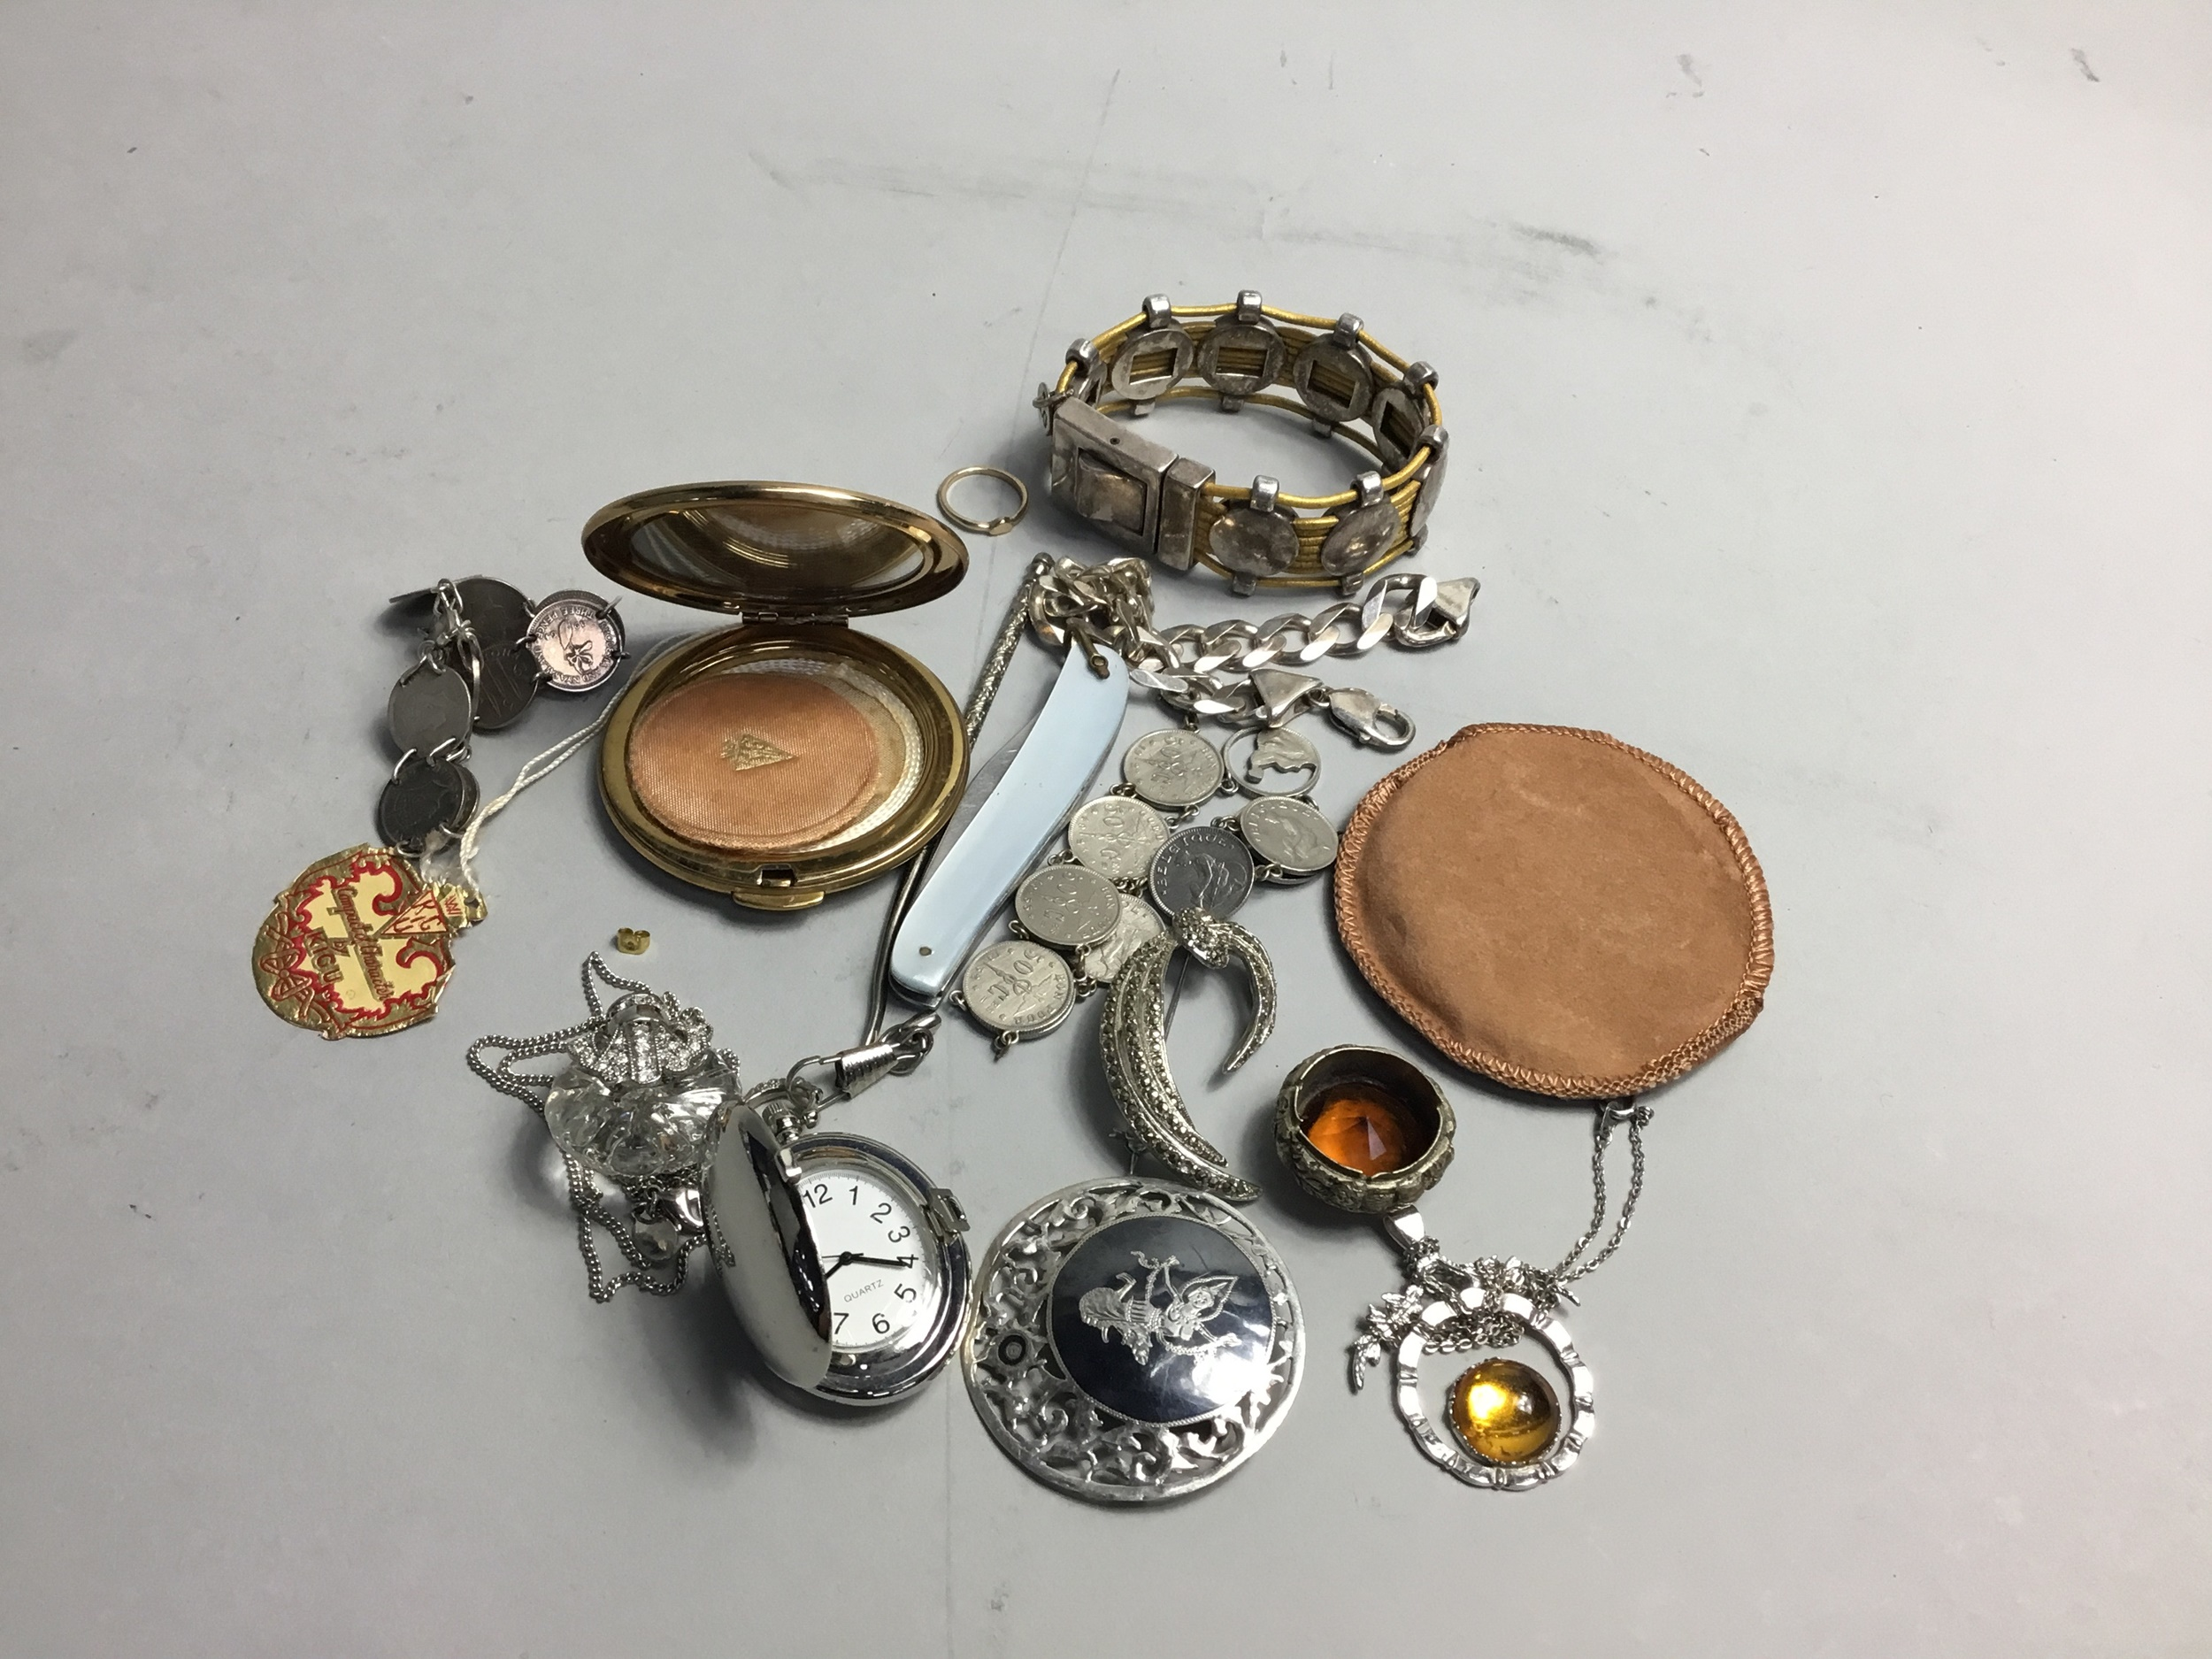 A SILVER BROOCH, OTHER BROOCHES, BRACELETS AND A PENDANT